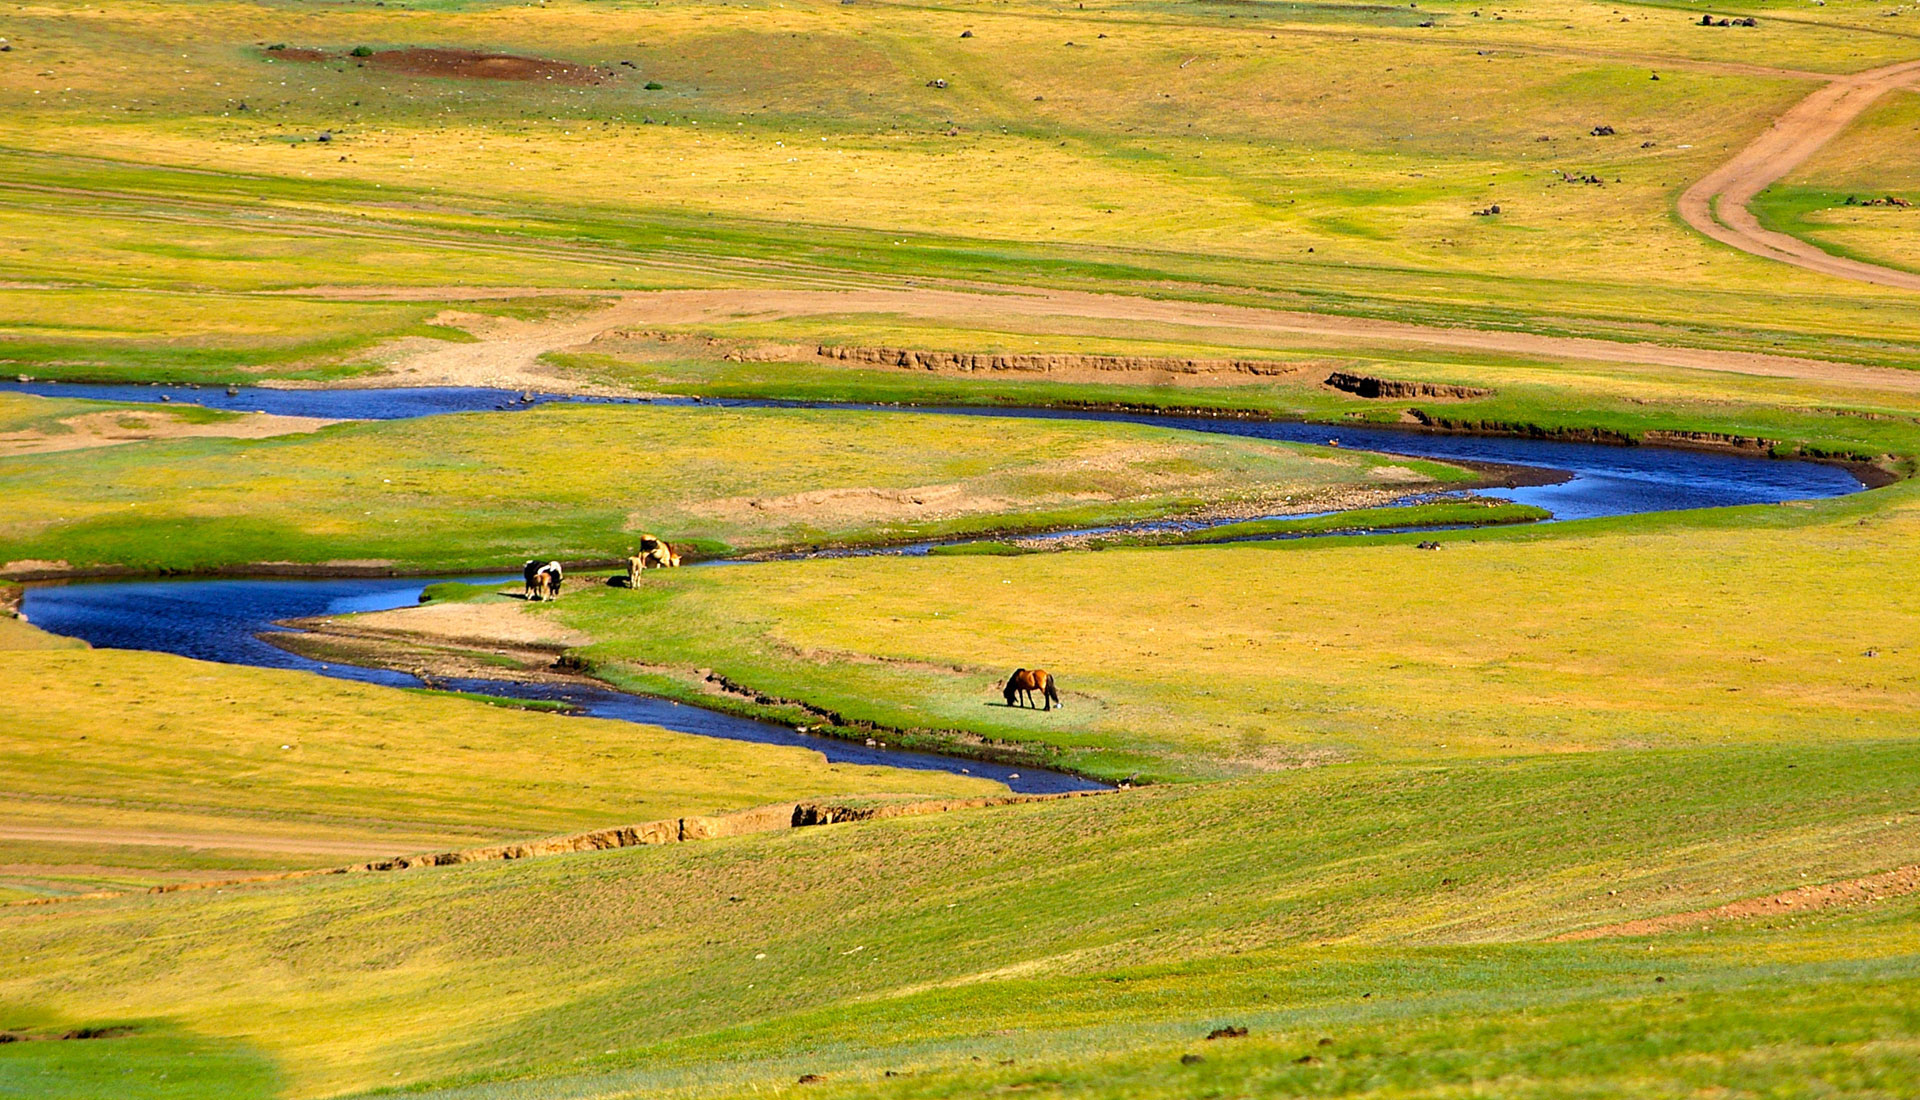 Mongolie - Immersion en terres nomades